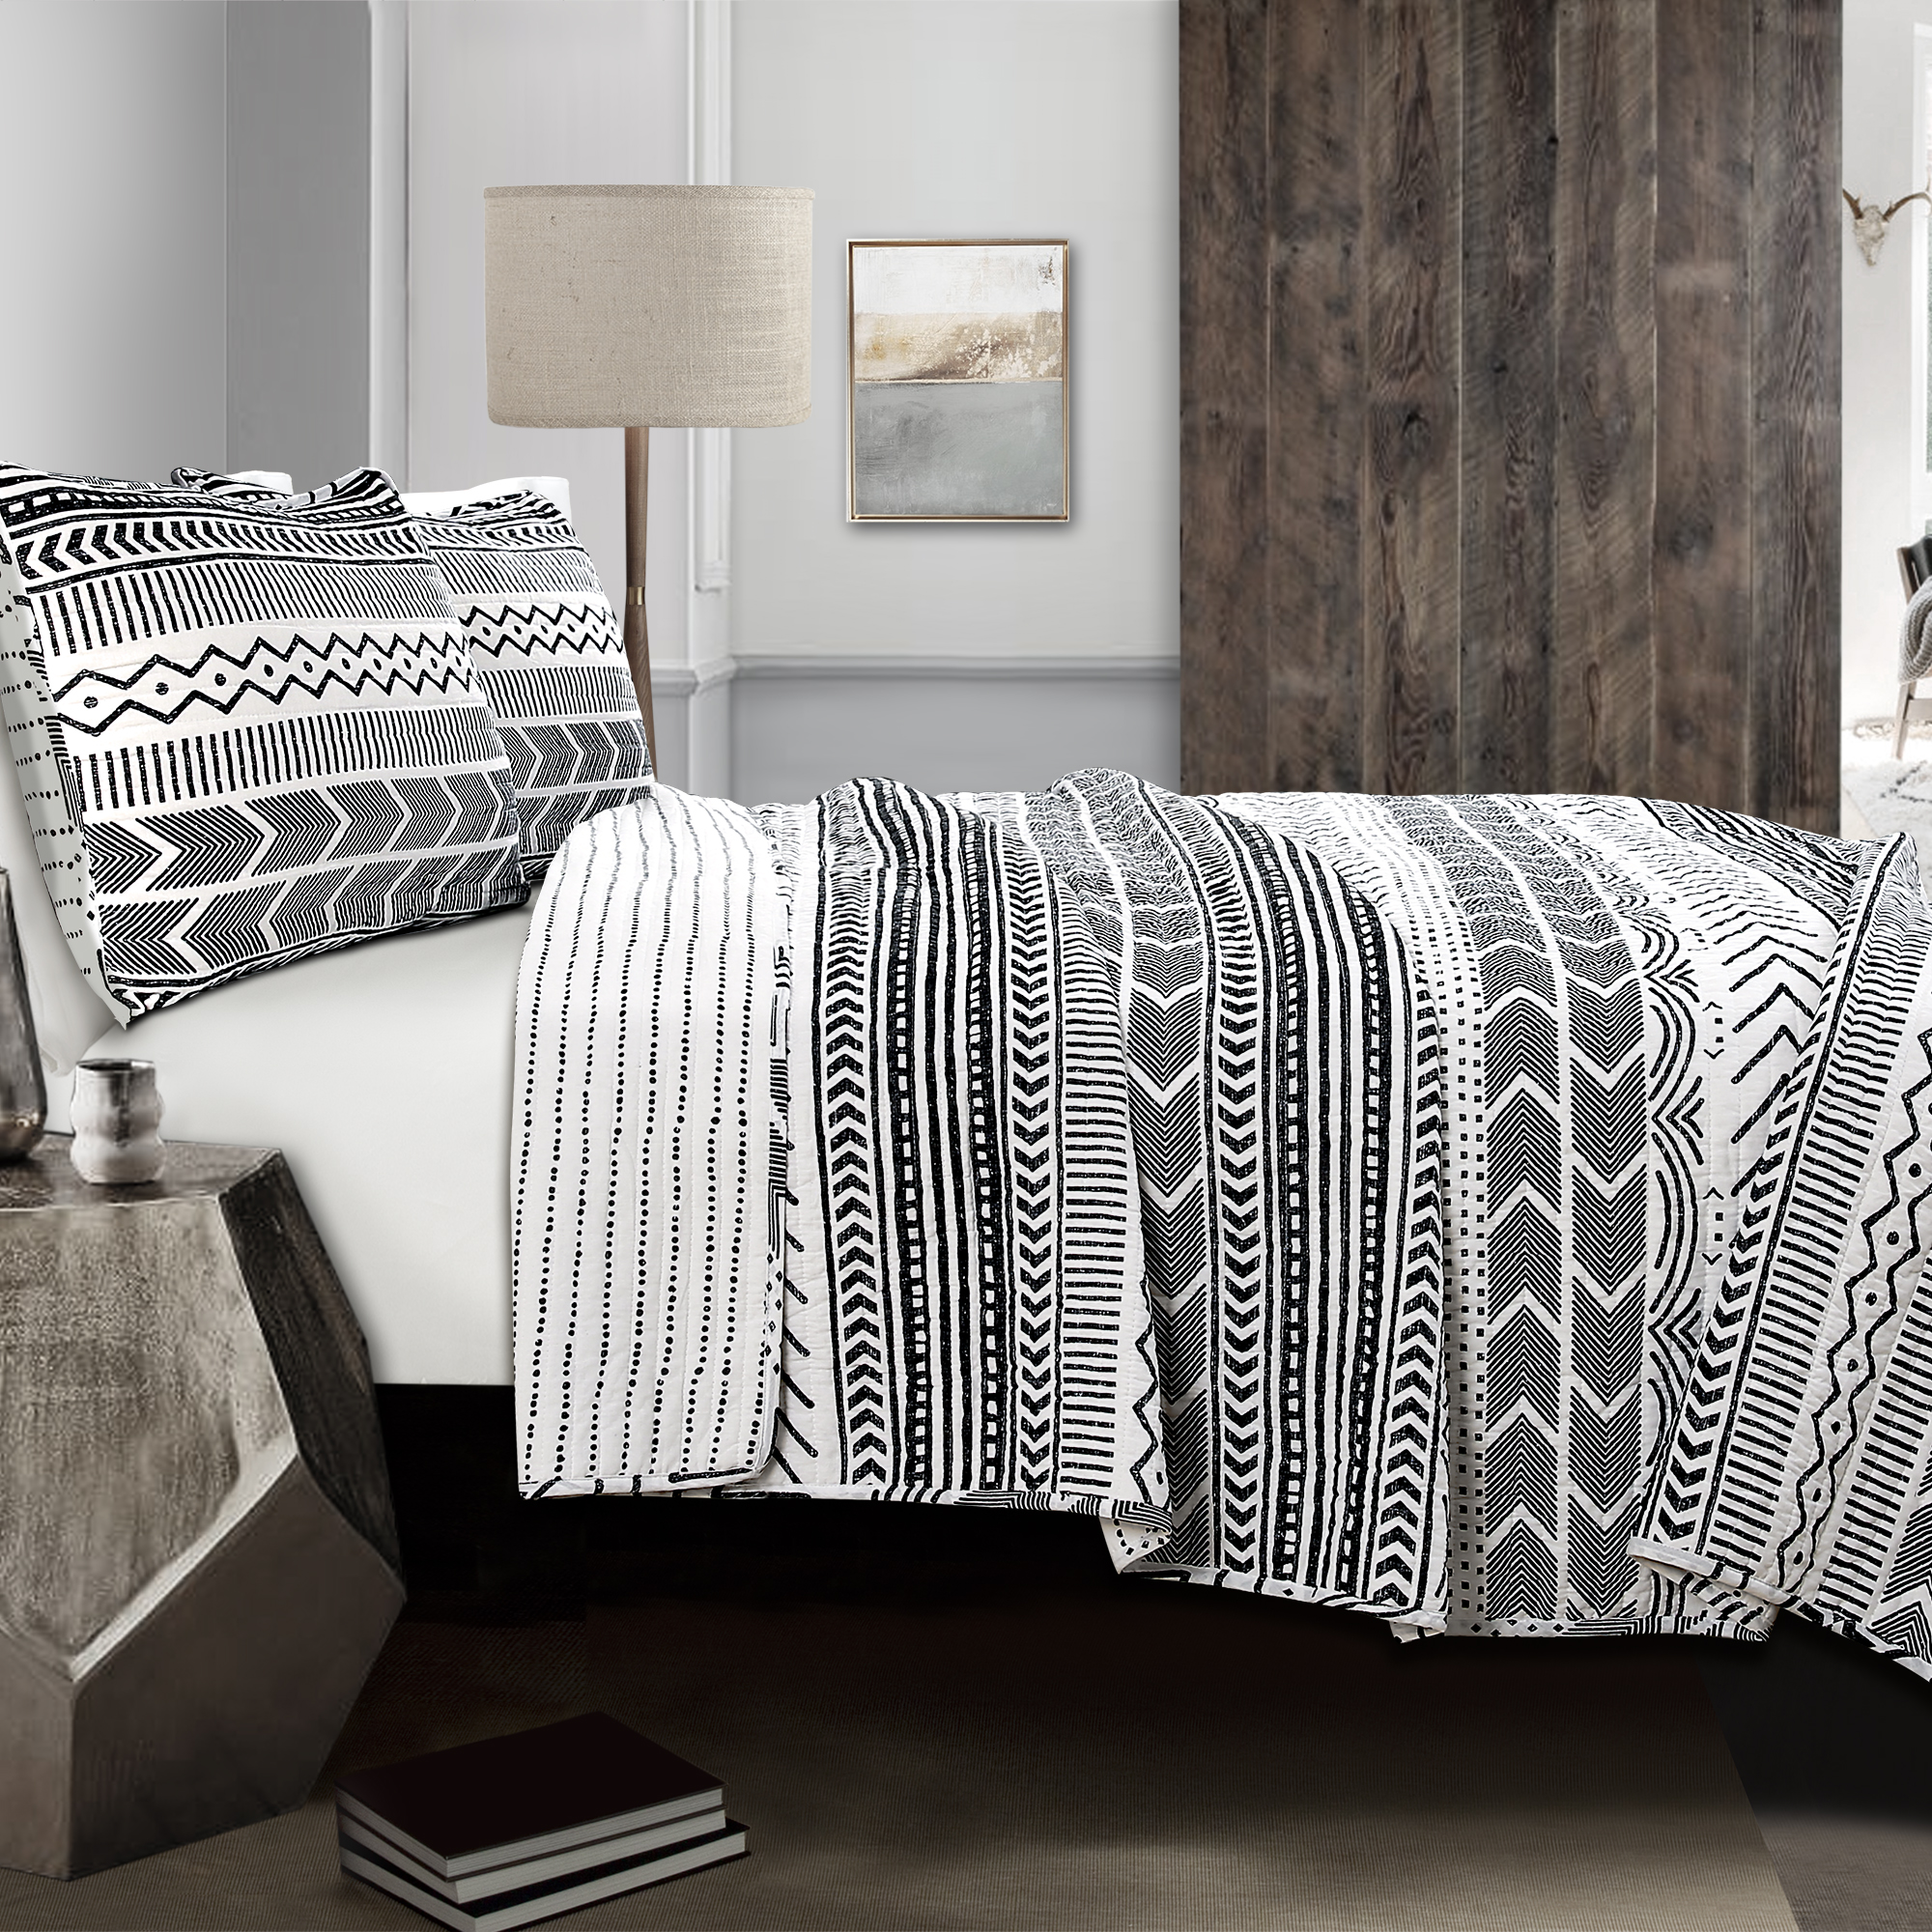 Hygge Geo Quilt Black/White 3Pc Set Full/ Queen